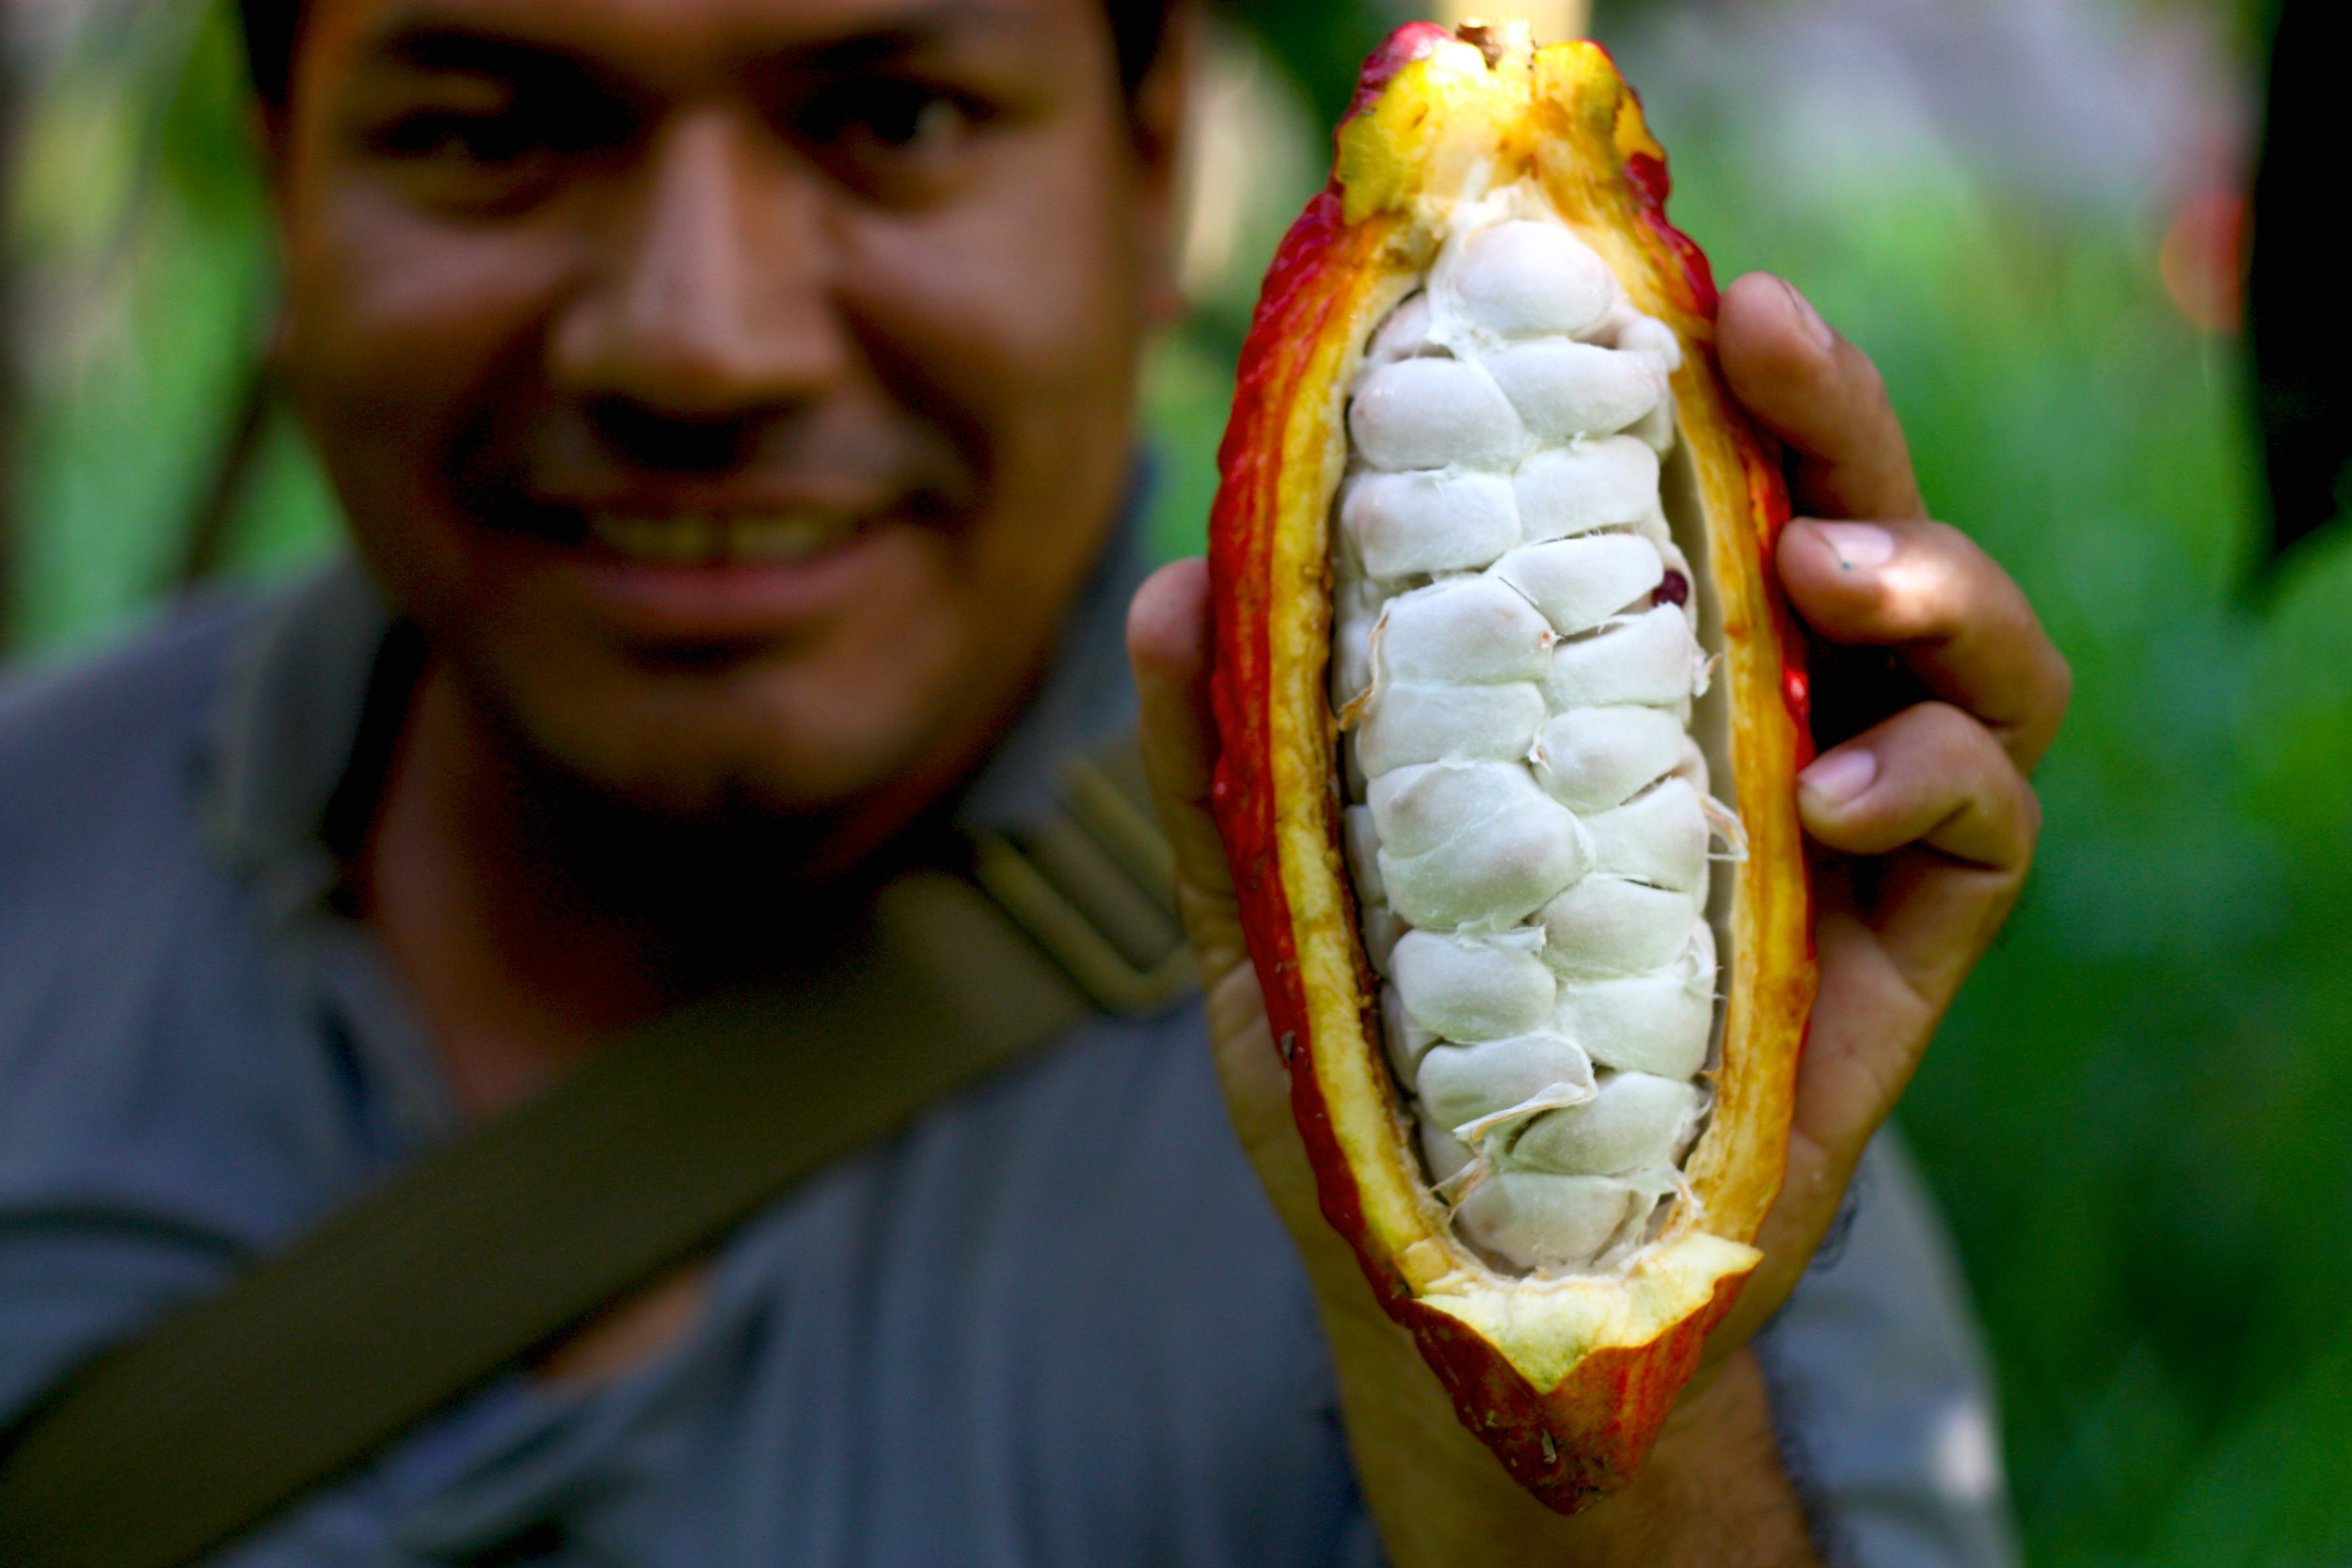 Aldo, a Peruvian cocoa technician who was employed by the TCHO USAID grant